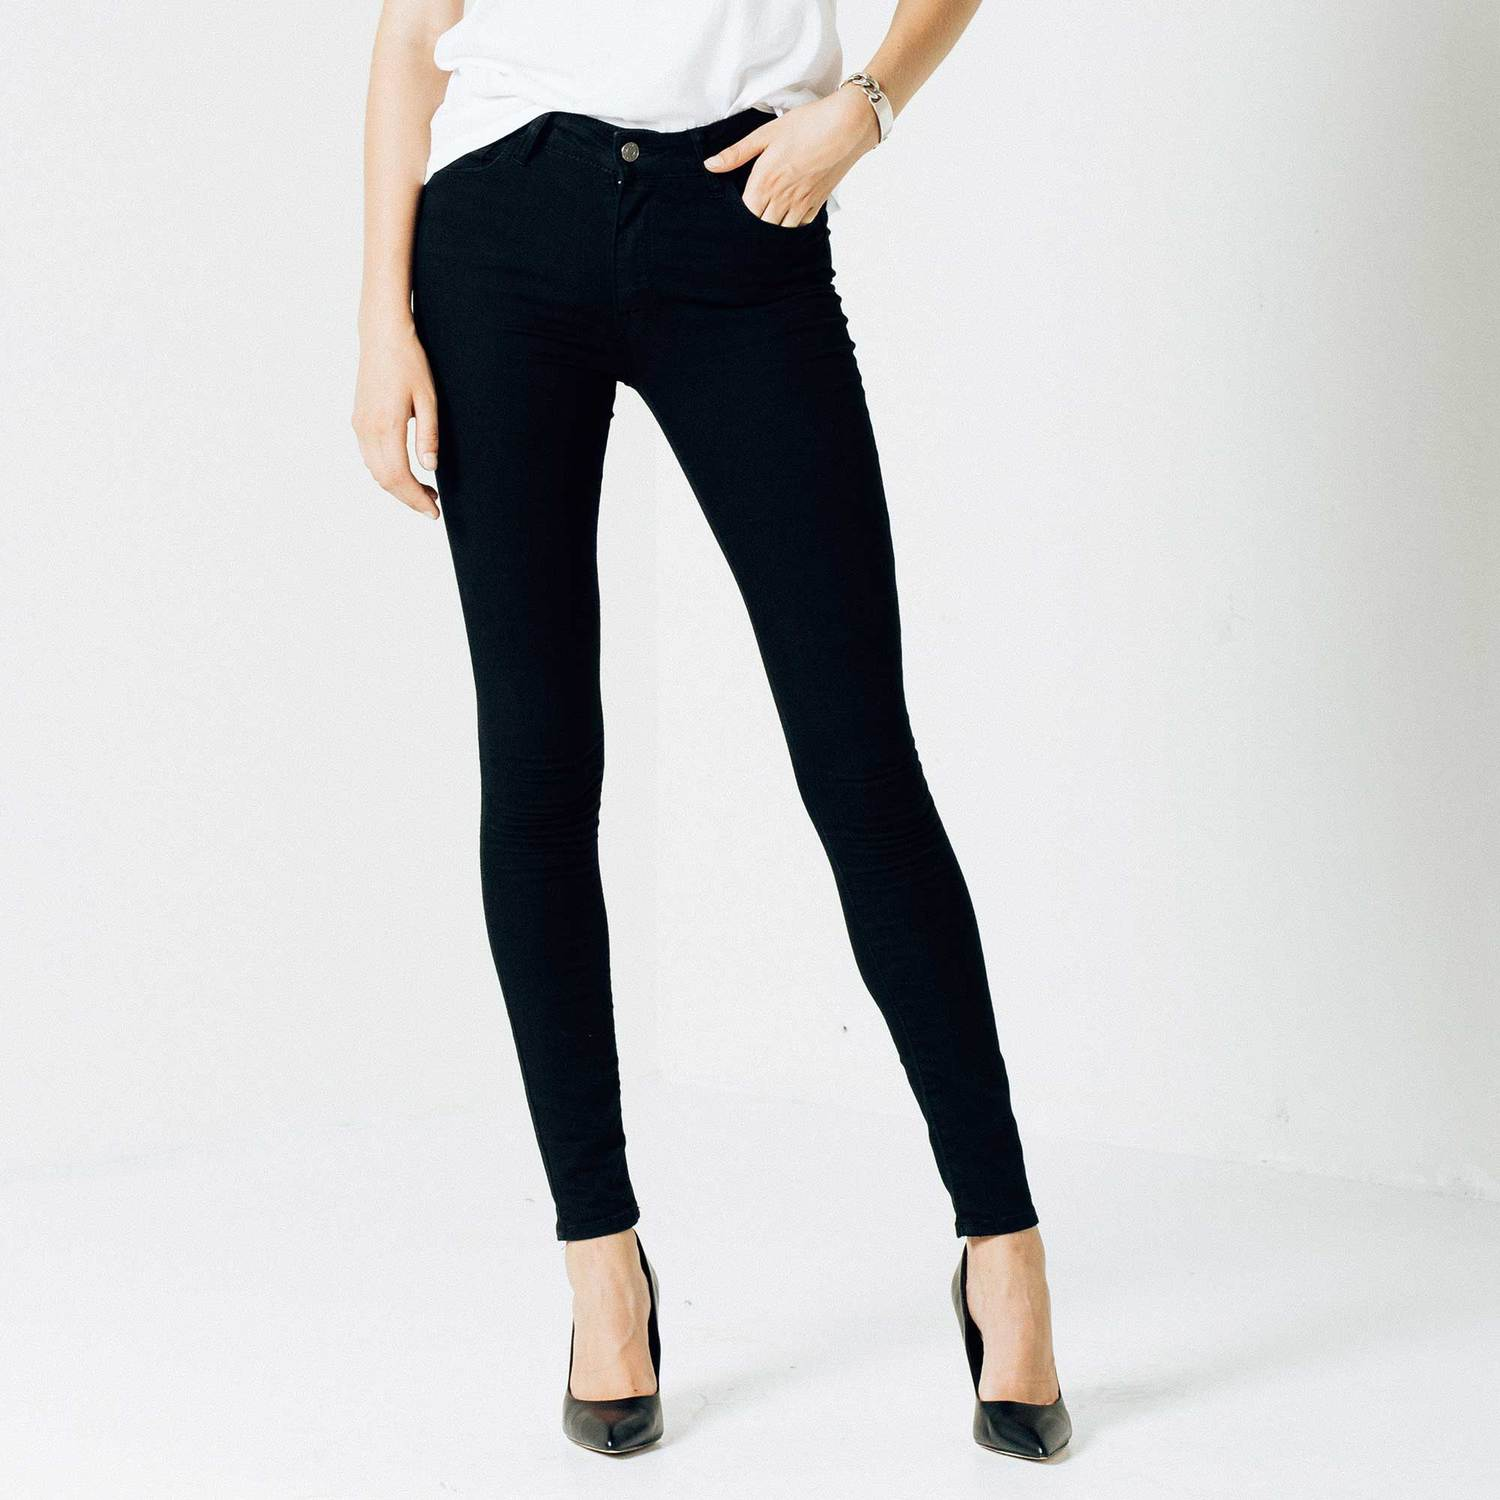 Womens High Waisted Skinny Jeans In Black Powerstretch $85 ...